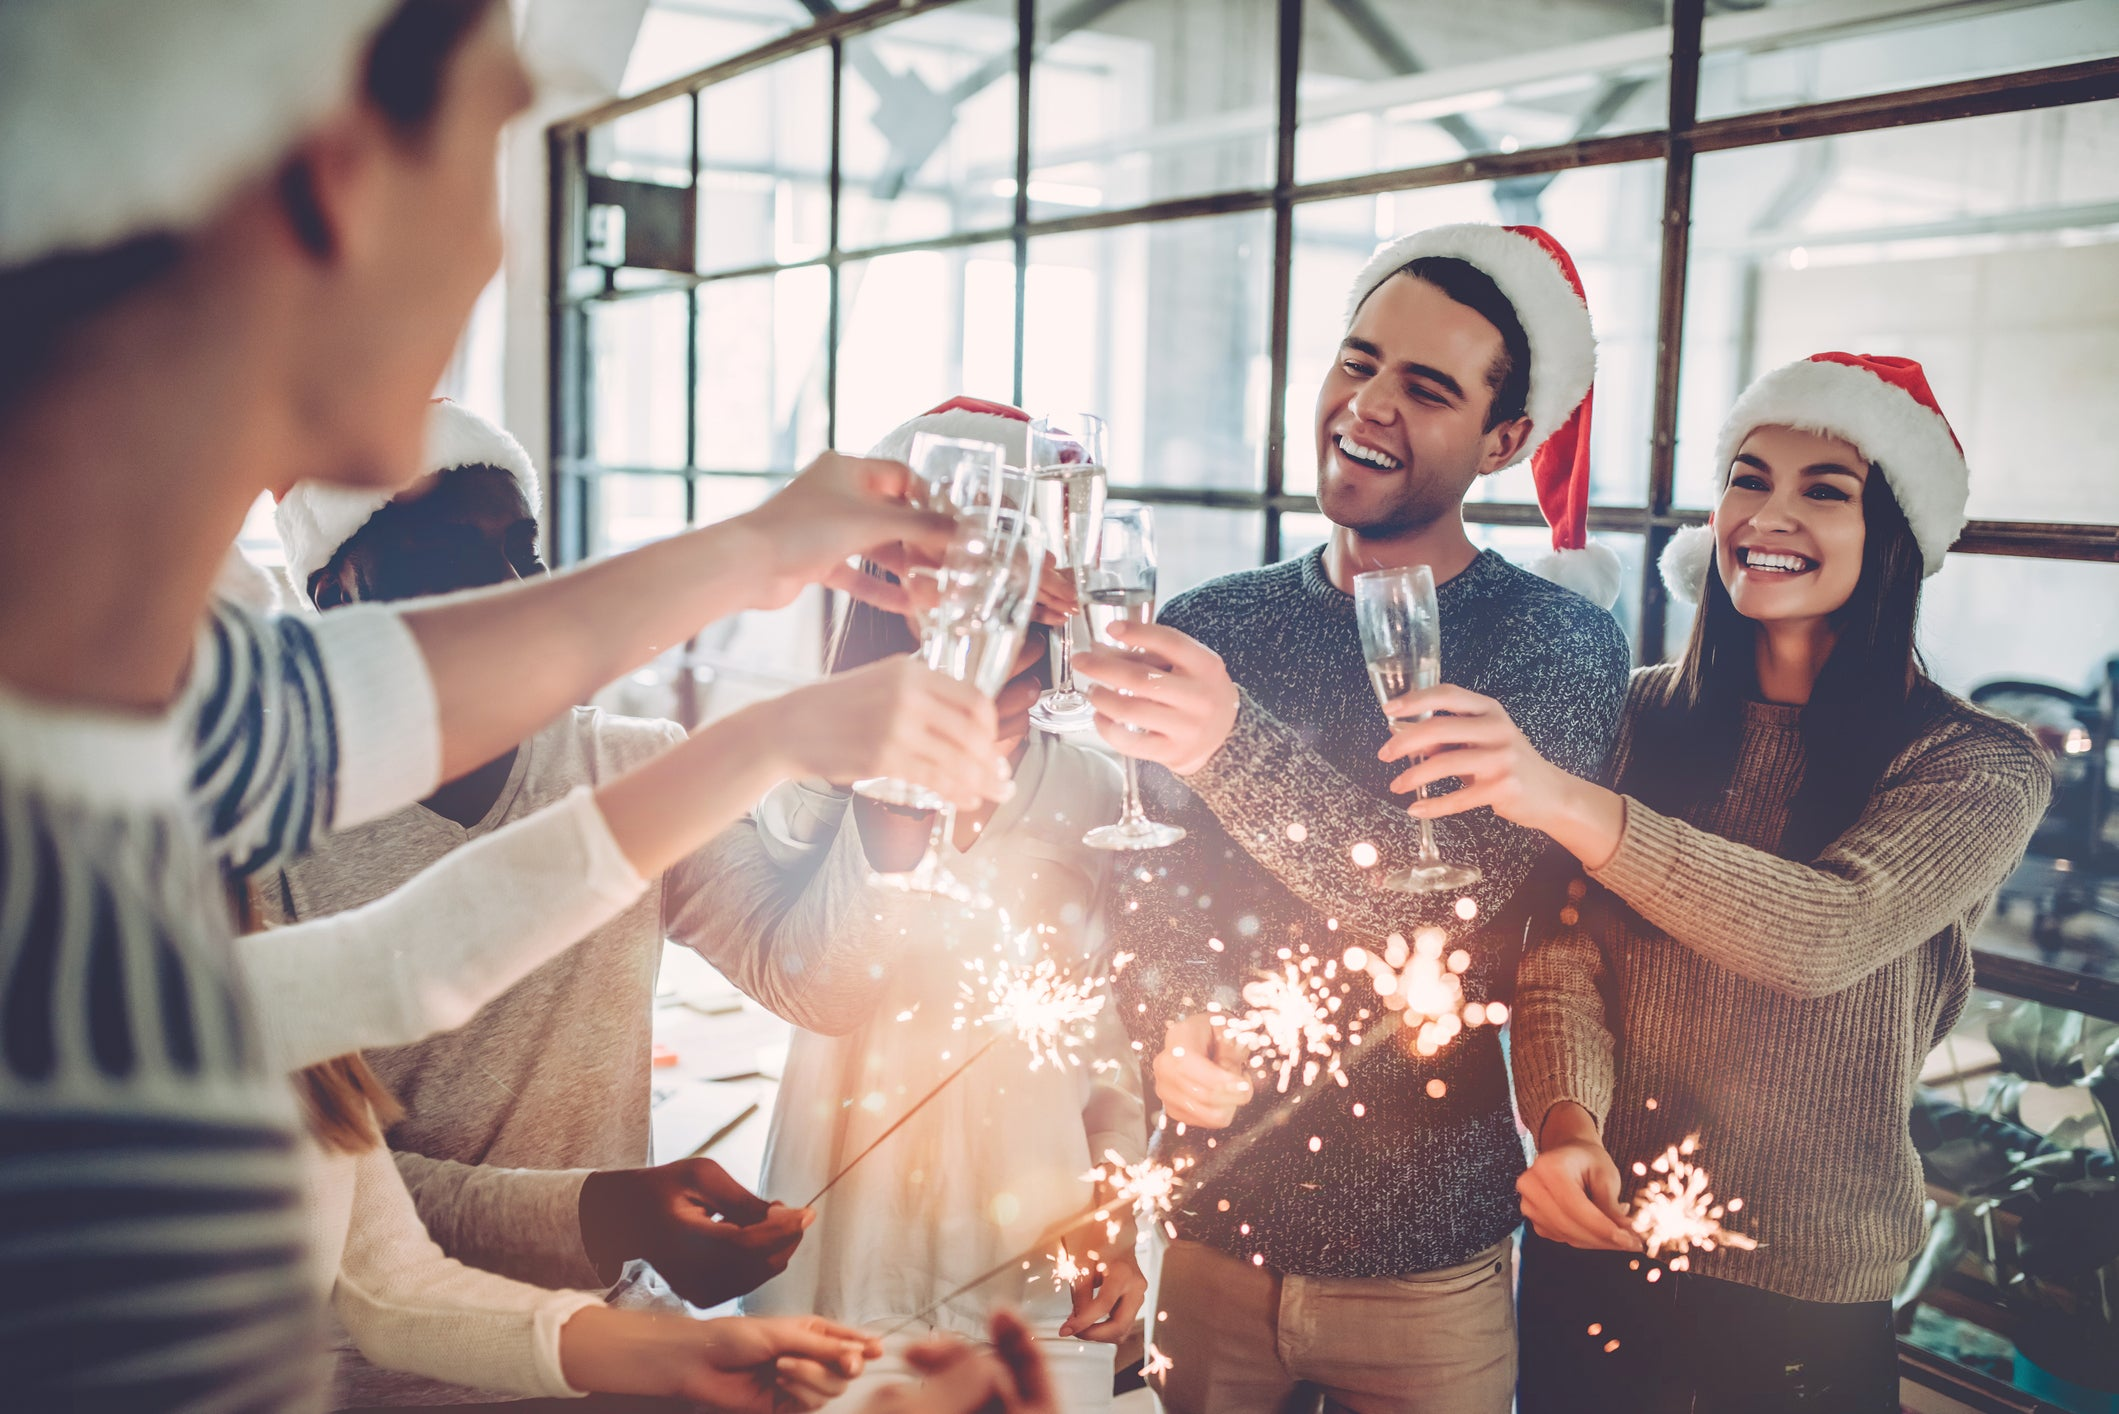 4caa5c012d733 Hate Company Holiday Parties? Here's How to Survive Them -- The ...